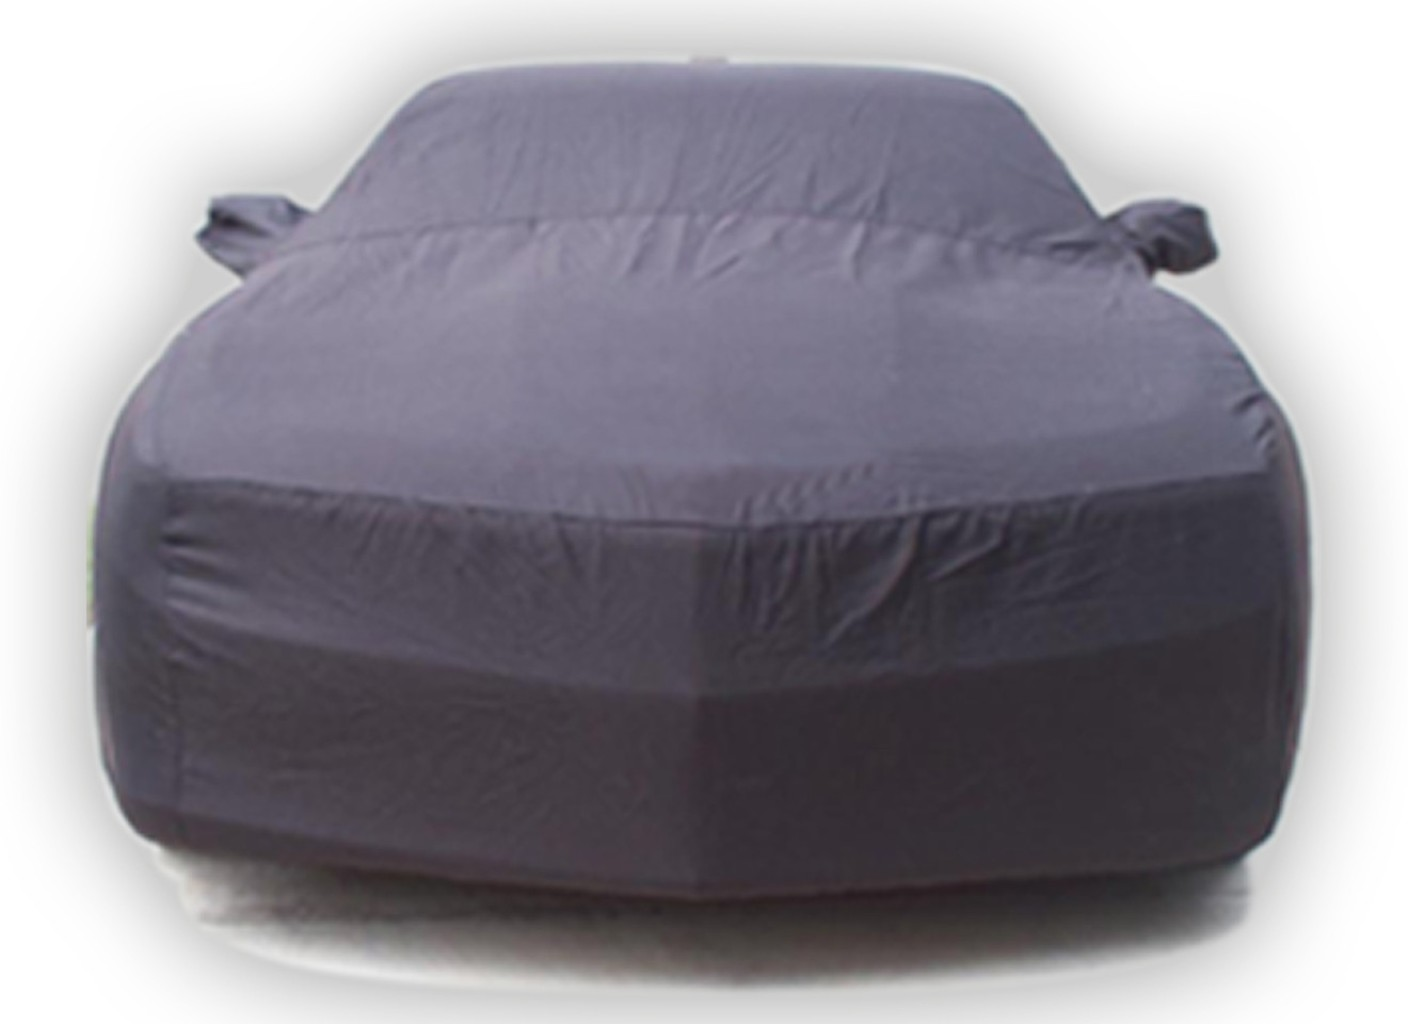 Tata Manza Car Cover